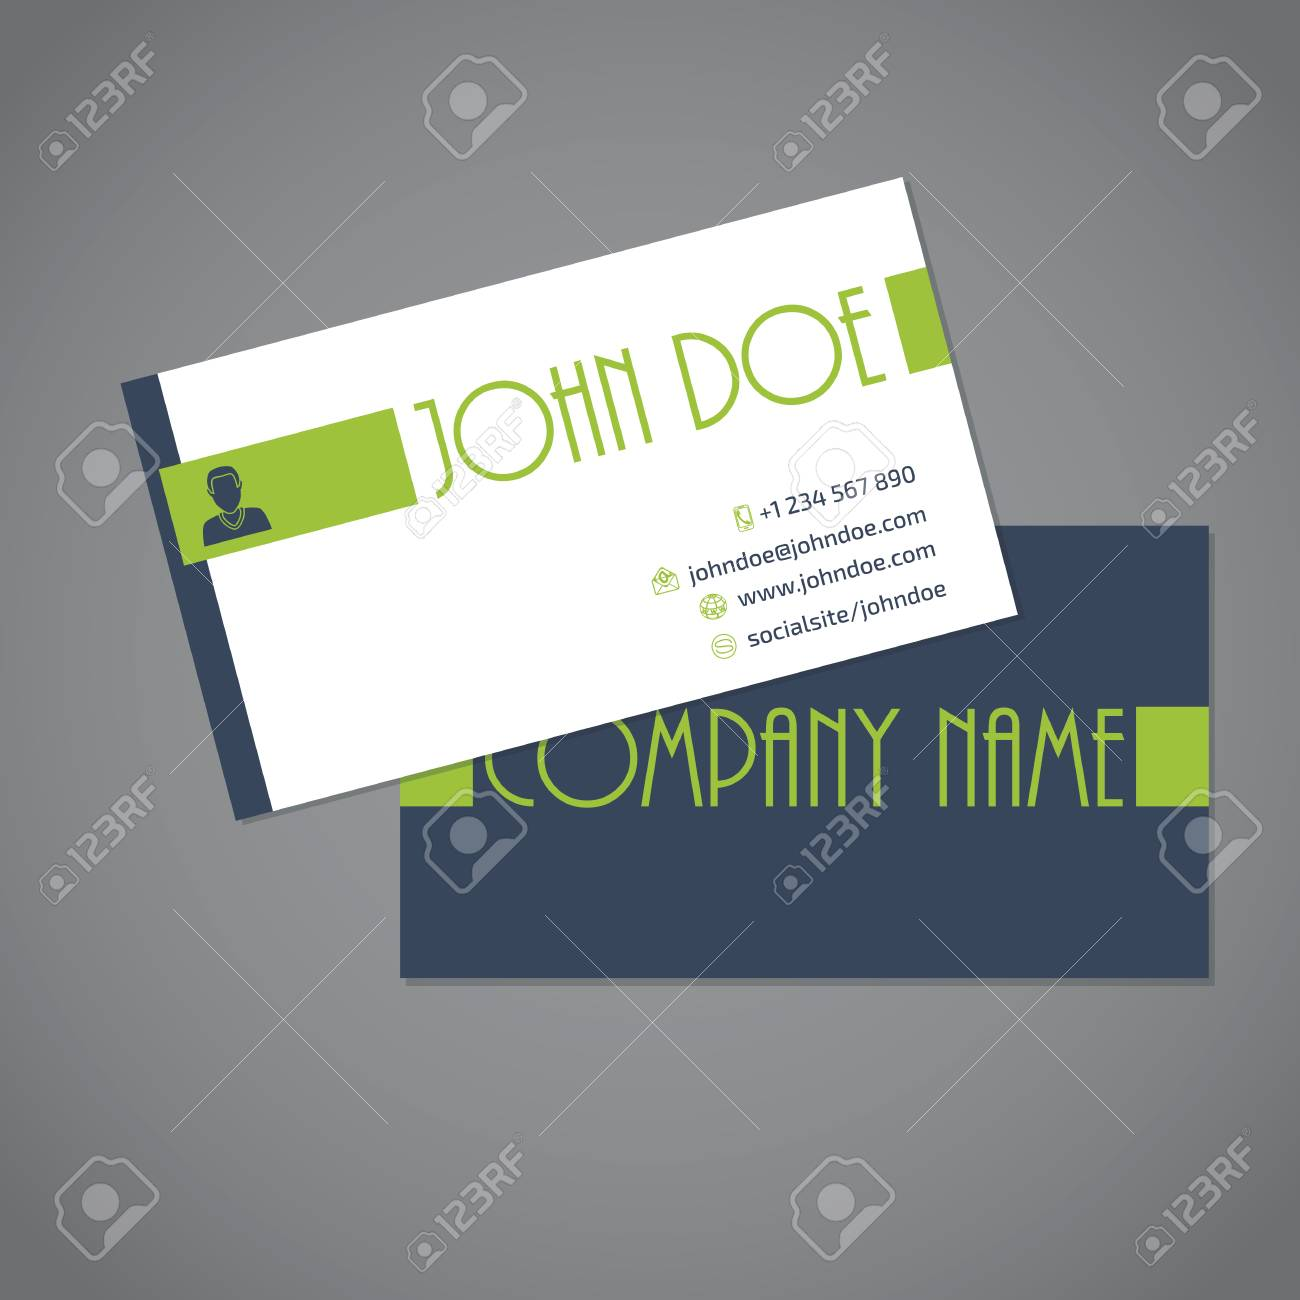 Simplistic Business Card With Two Sides Design Royalty Free Cliparts ...